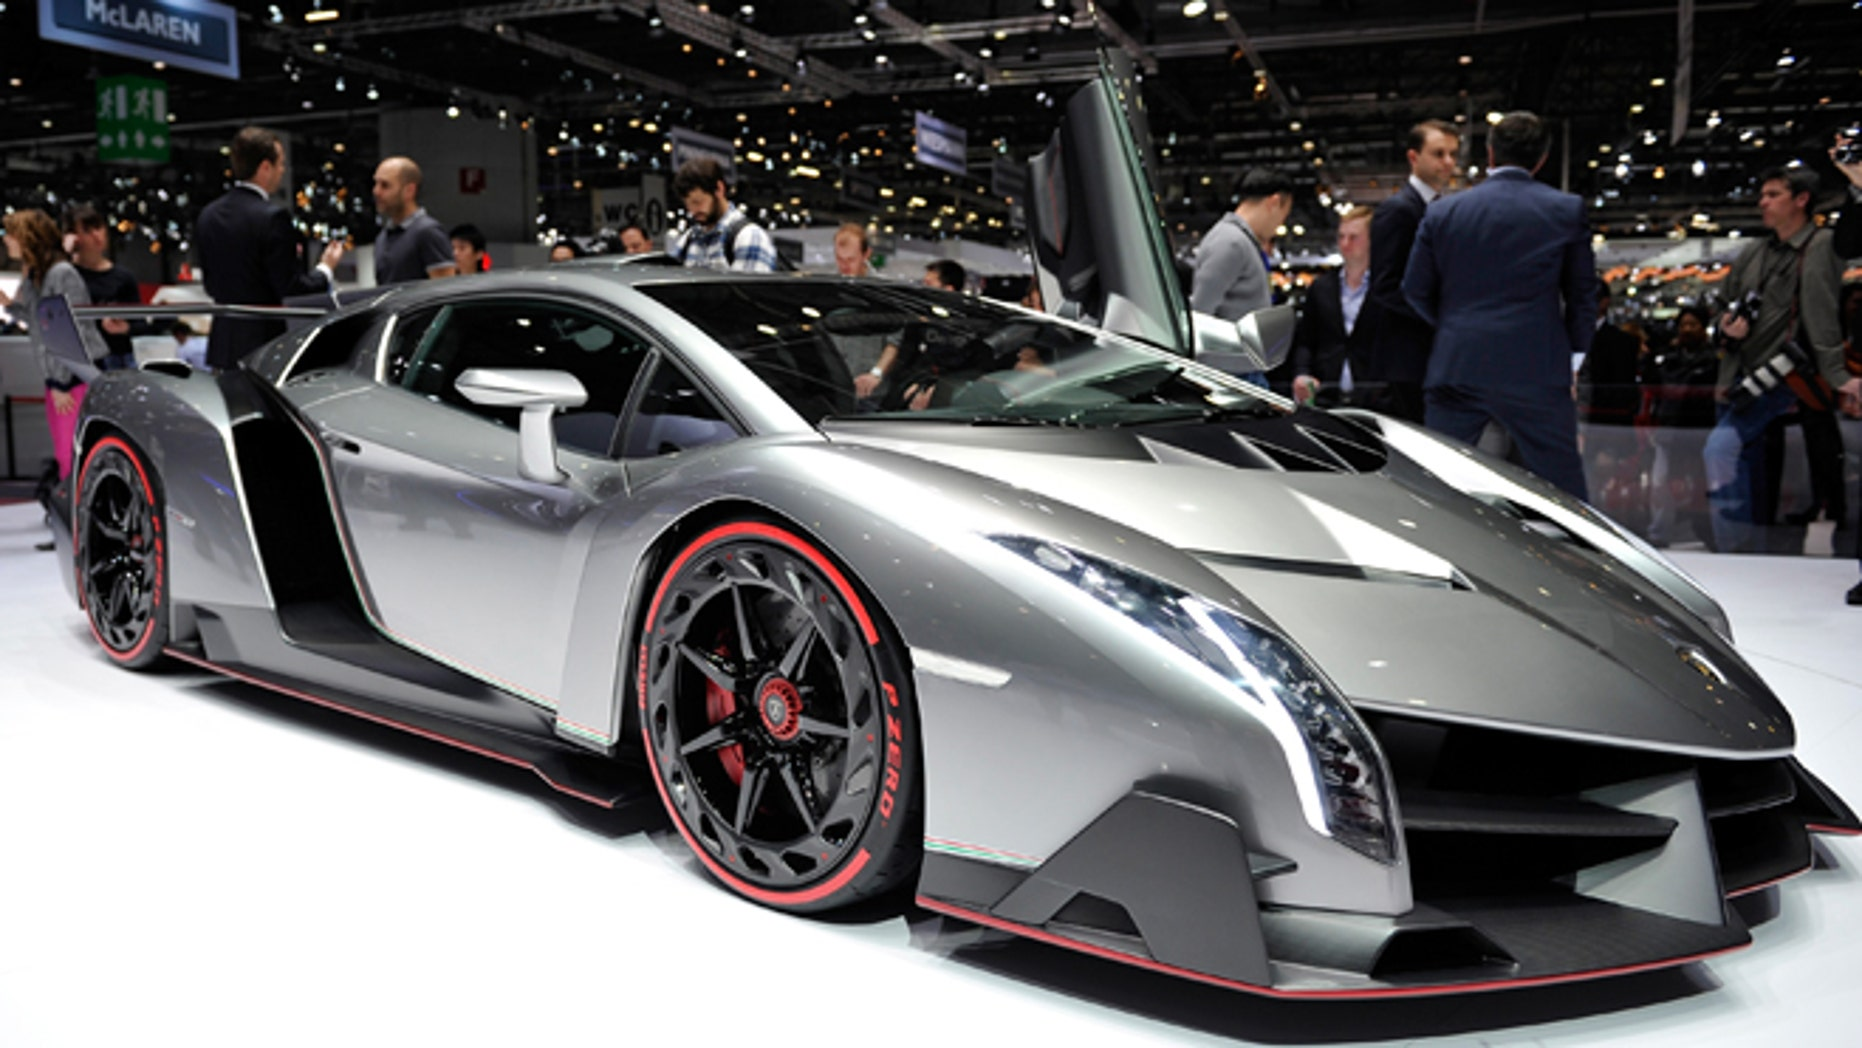 The new Lamborghini Venenos at the 83rd Geneva Motor Show on March 6, 2013 in Geneva, Switzerland.